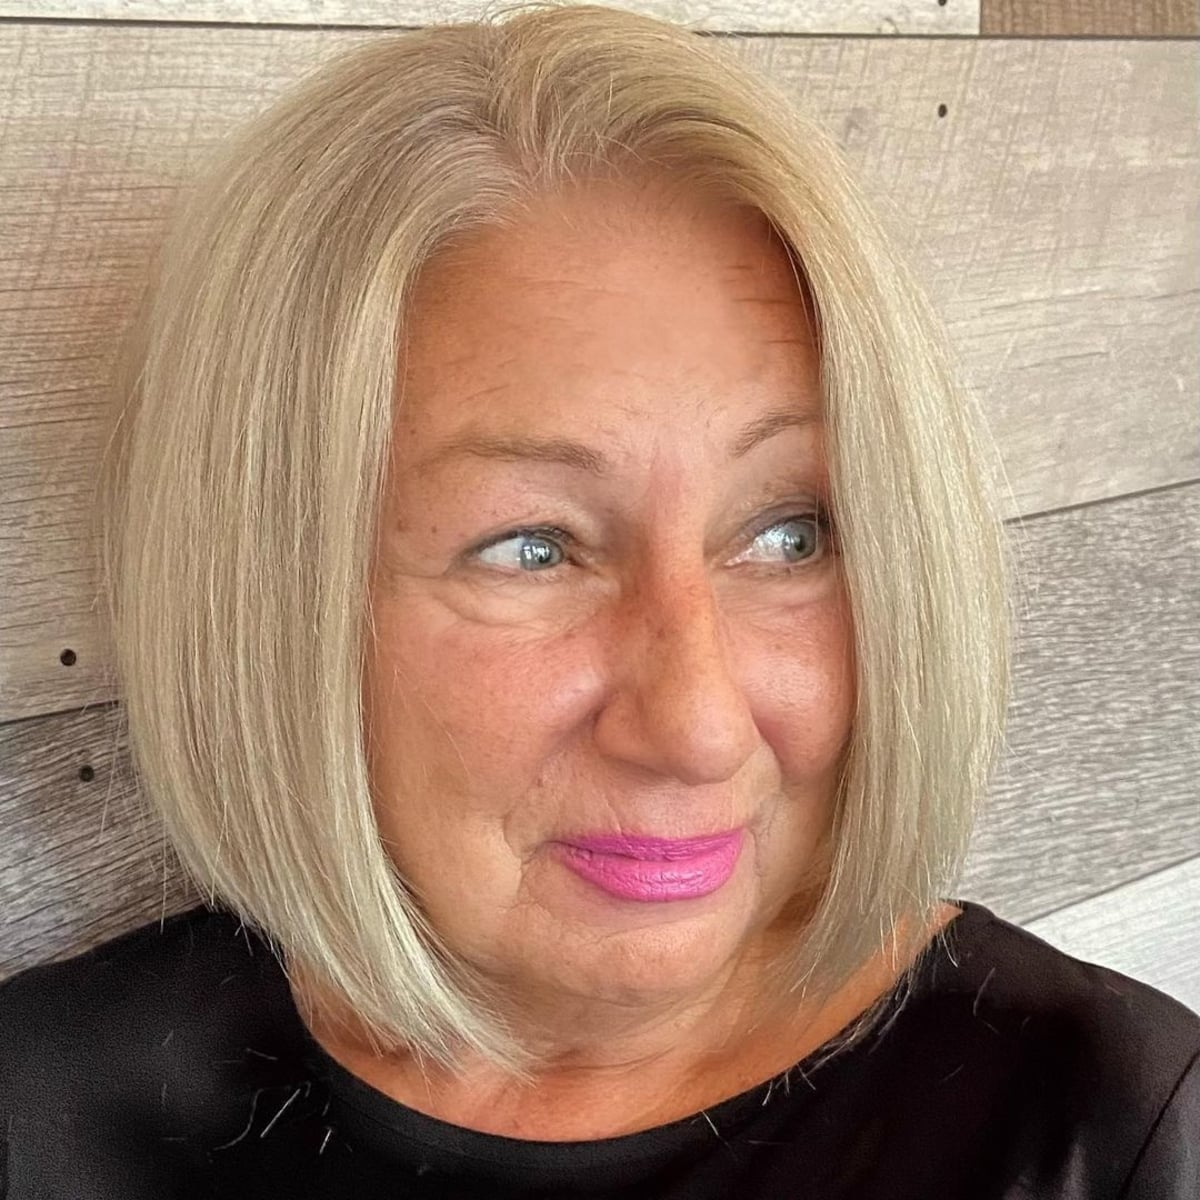 19 Flattering Hairstyles for Women Over 60 with Round Face Shapes